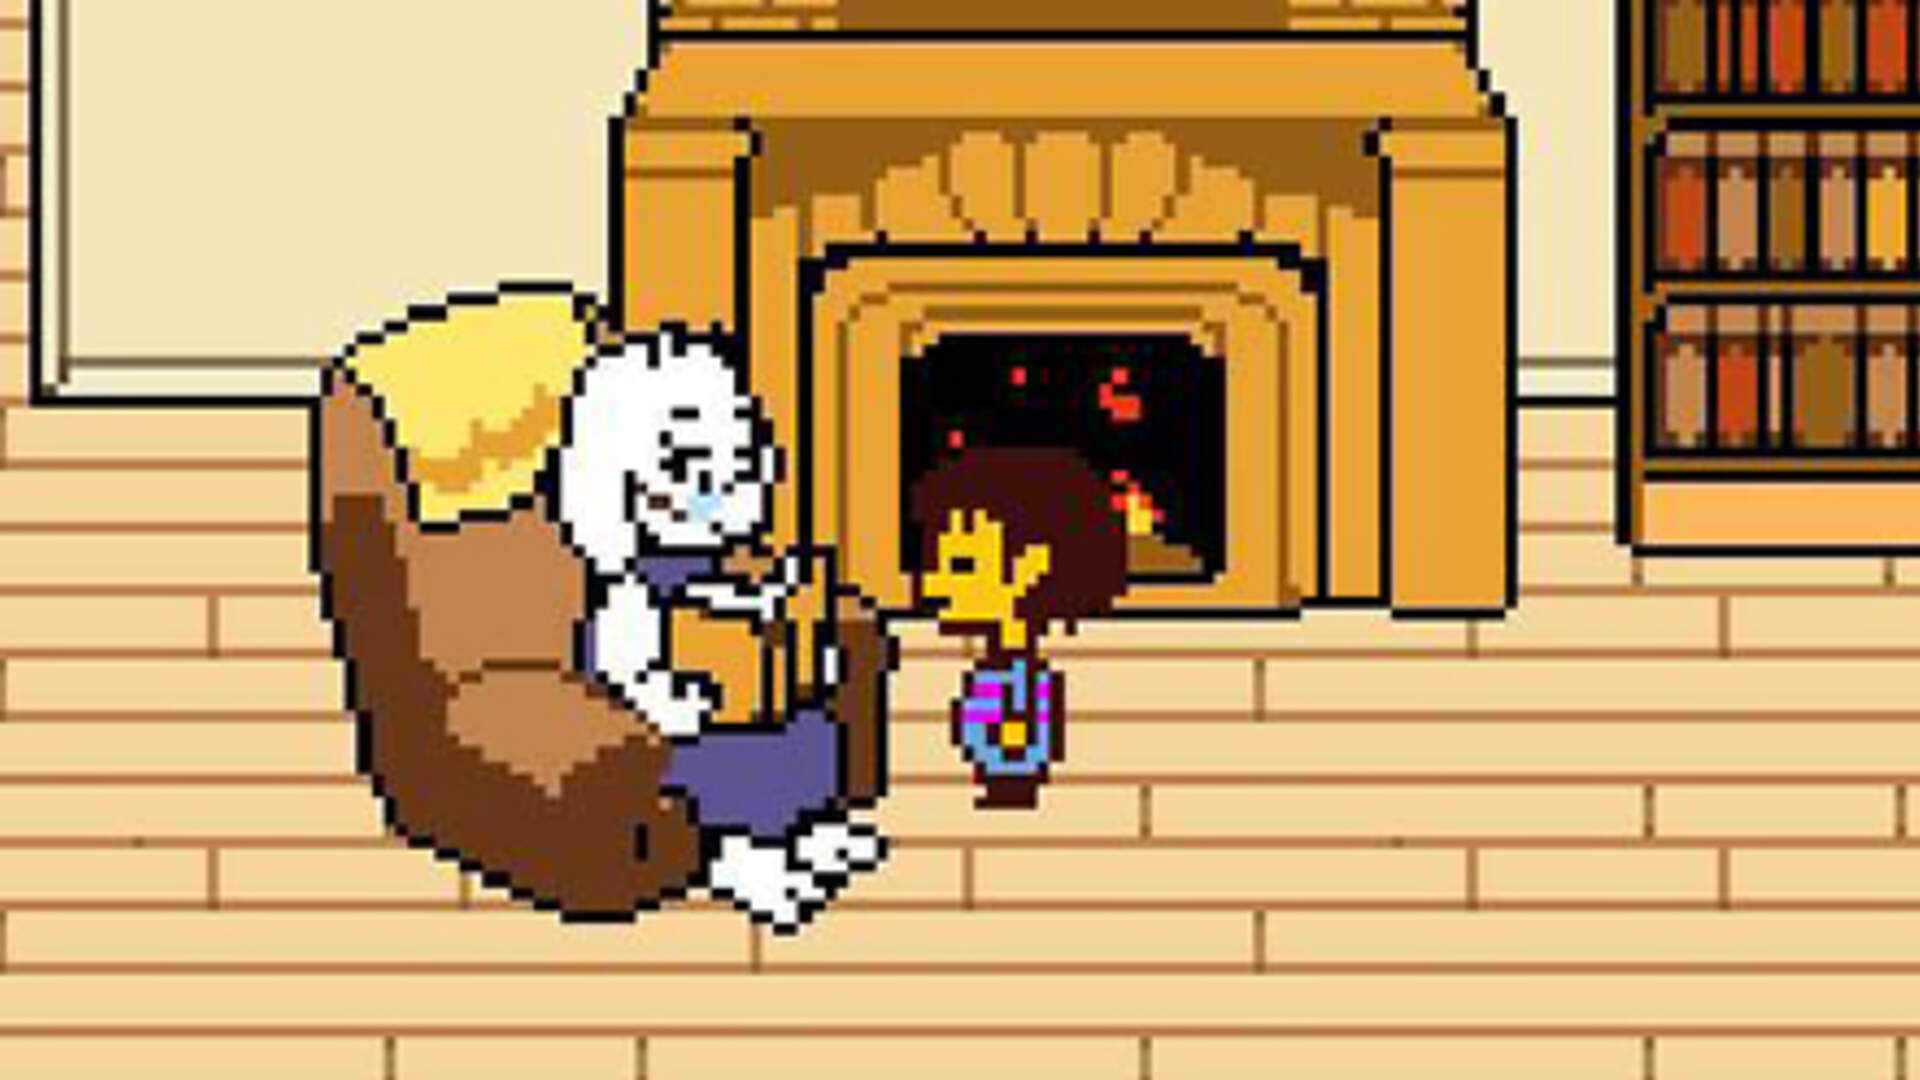 Undertale Creator's New Game Also Has an Uninstalling Bug